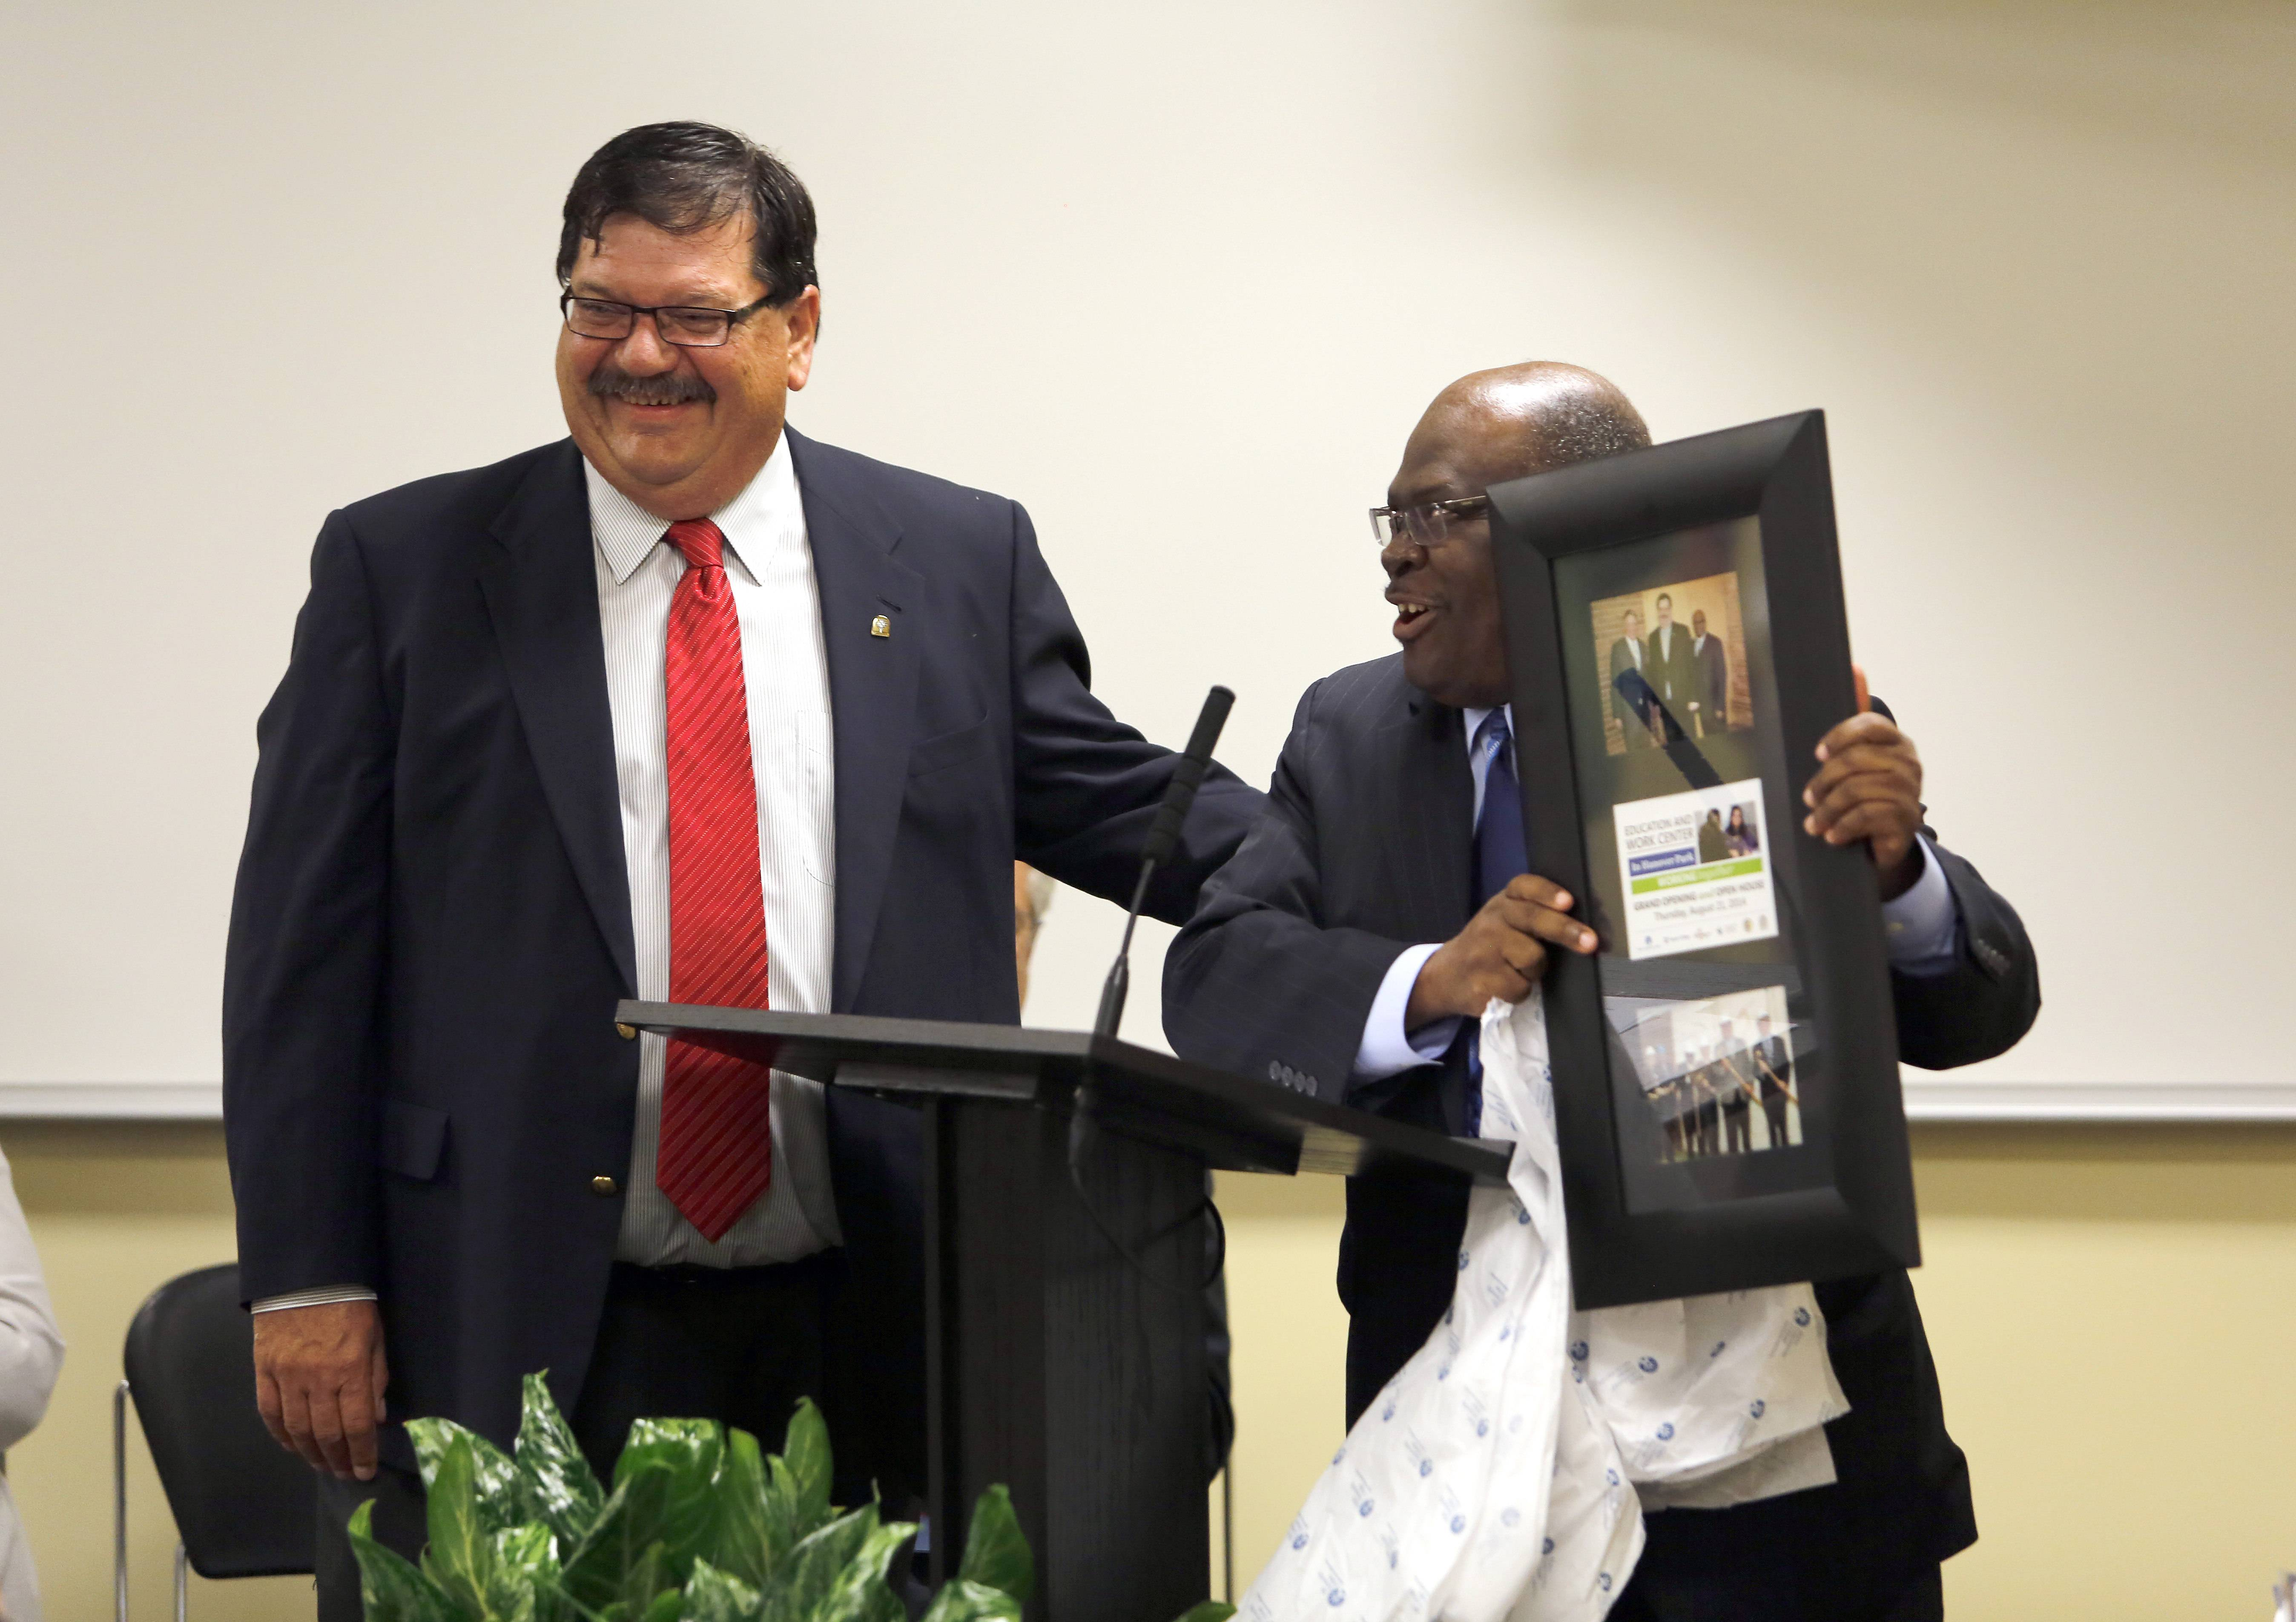 Hanover Park Mayor Rodney Craig receives a gift from Elgin Community College President David Sam during the opening of the Education and Work Center Thursday.